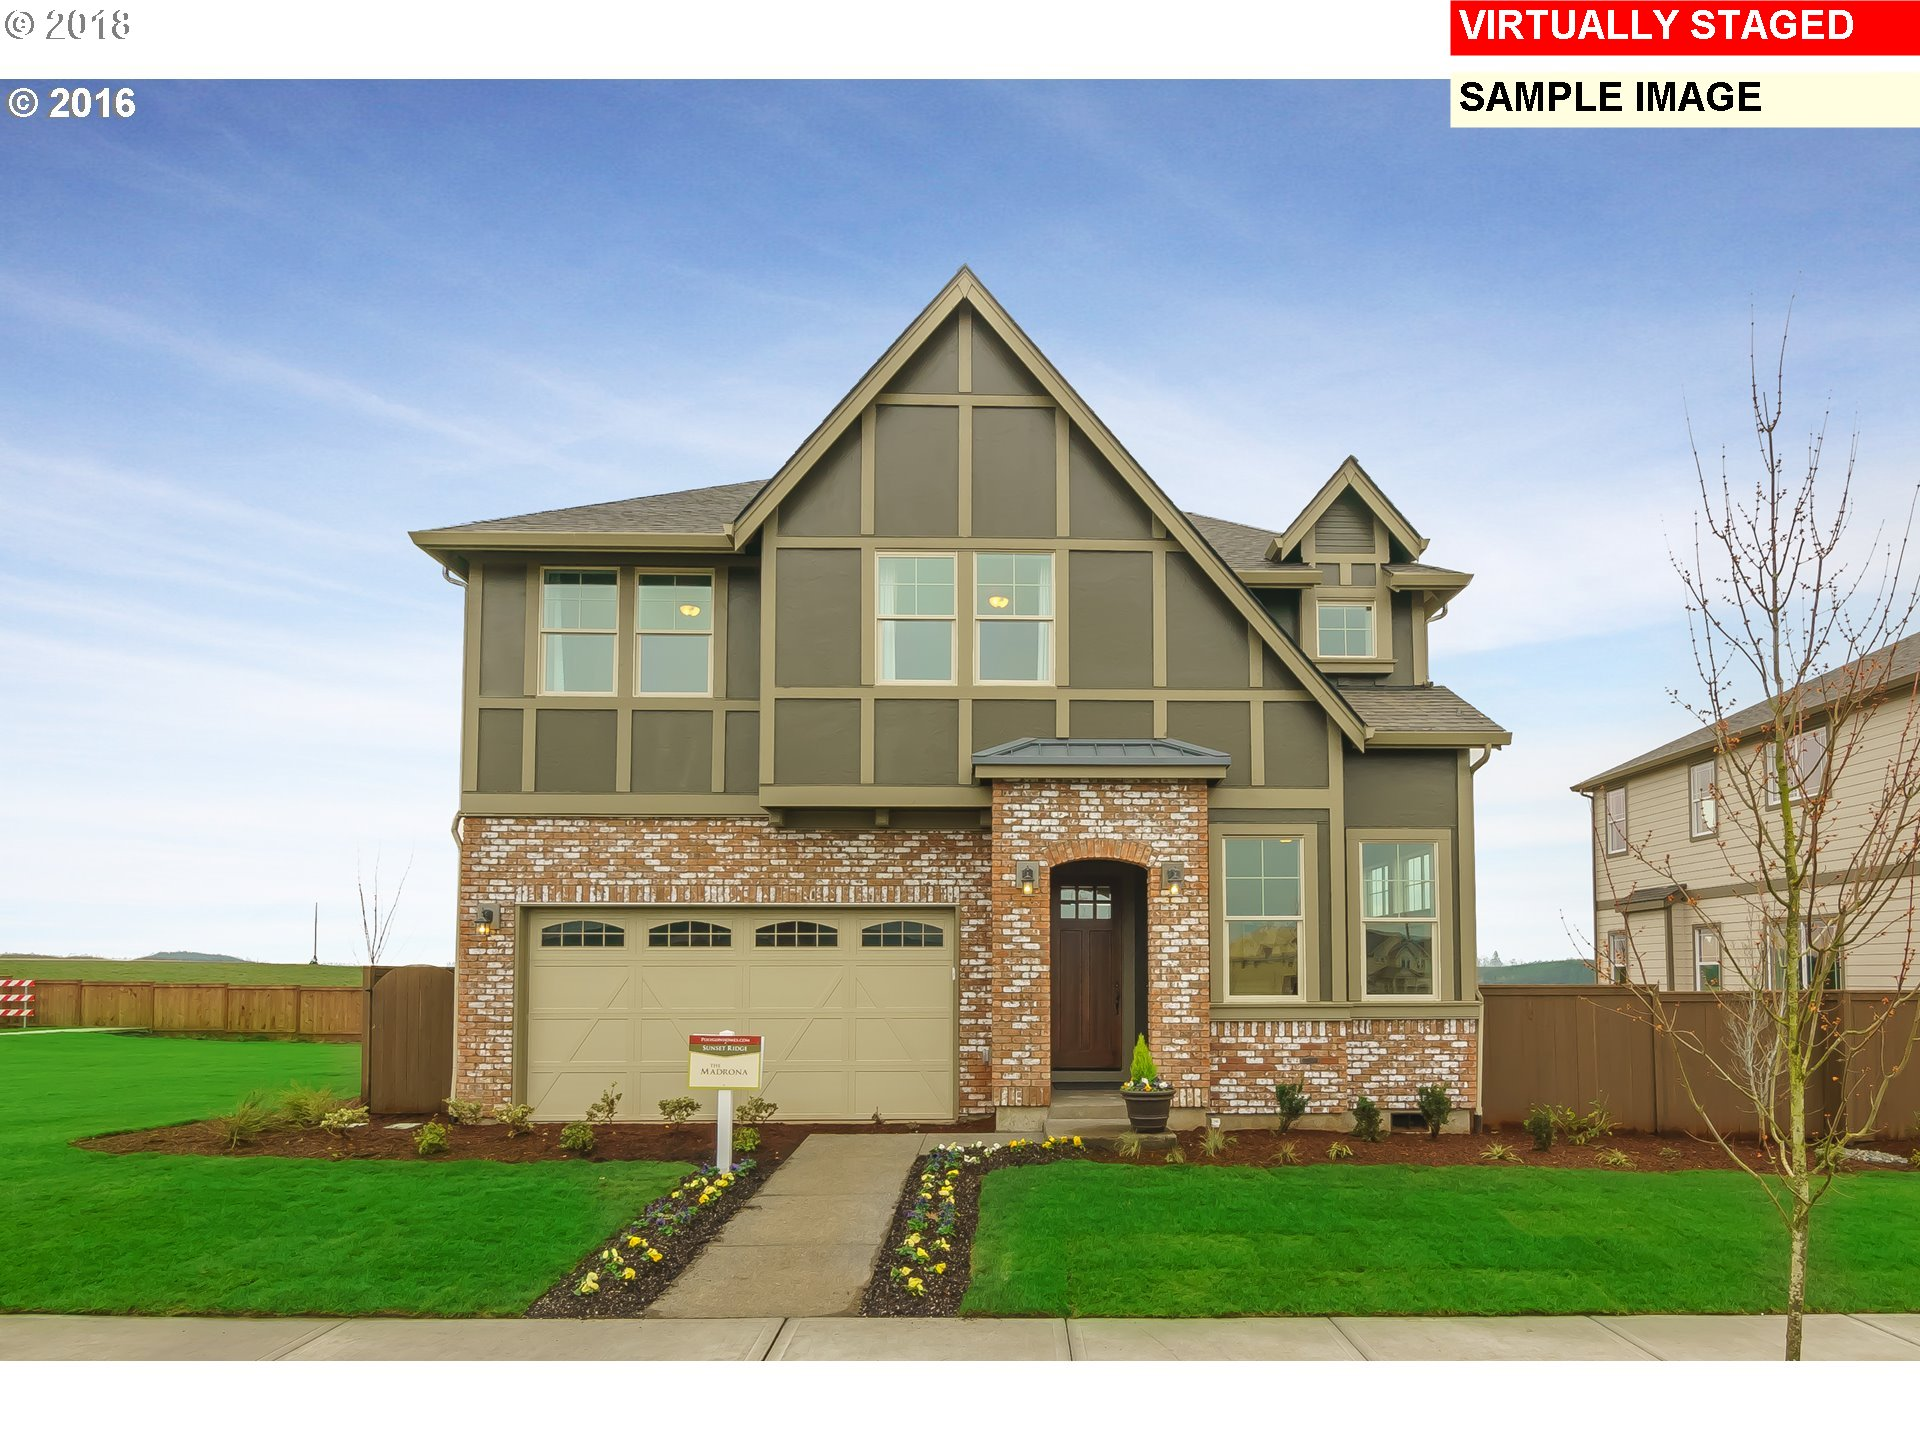 Brand New Master Planned Community! Gourmet kitchen with slab granite island, hardwood floors, & stainless appliances. Large master suite w/ walk-in closet. 3 Year Builder Warranty. Pics are model homes at previous communities. Brand new finish options! Exterior will vary.